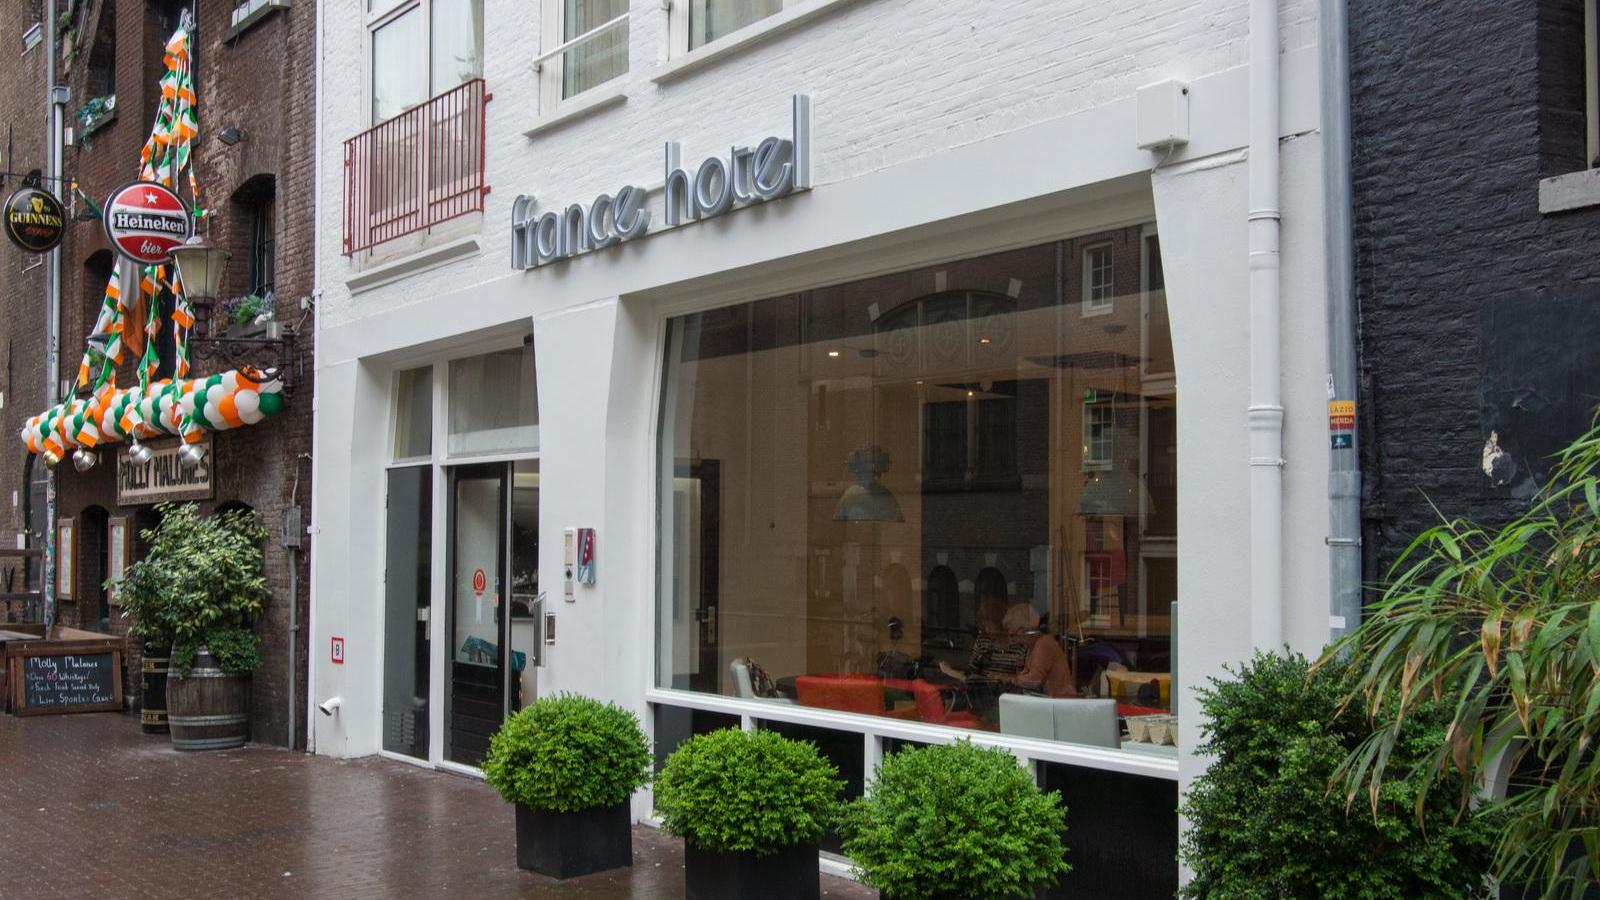 france hotel amsterdam centrally located hotel with